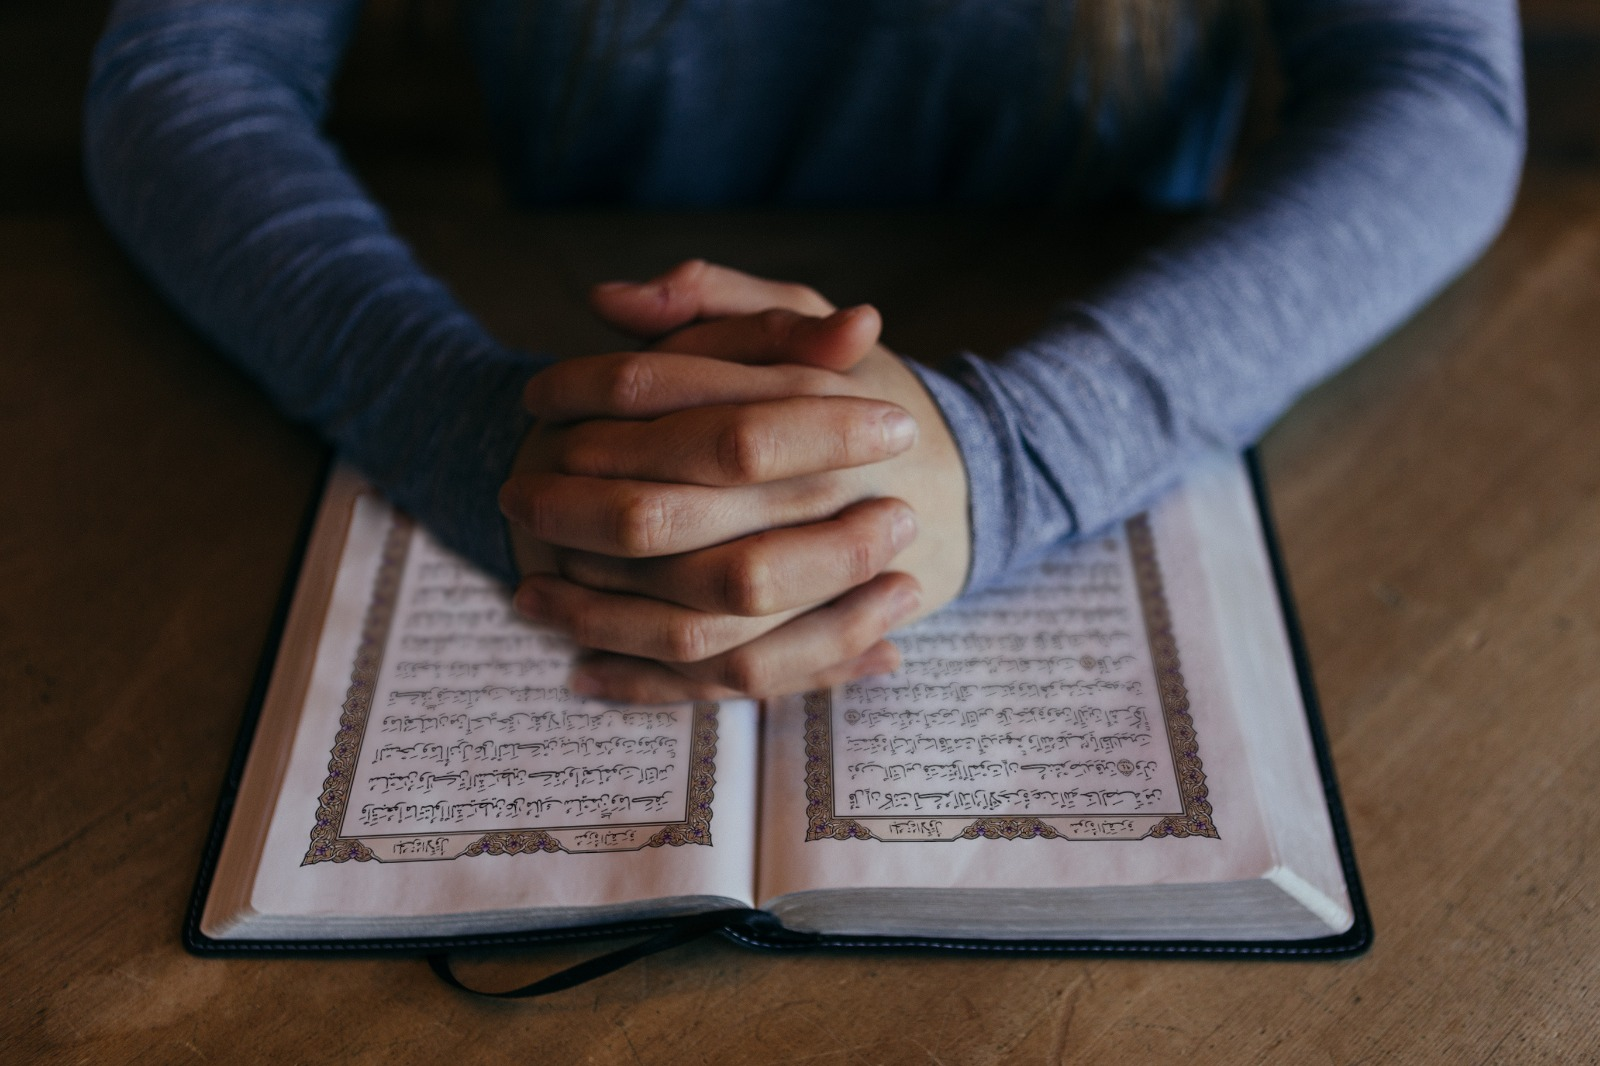 Memorisation of the Qur'an - Select verses from the Qur'an and du'as will be memorised by focusing on the intricate details of recitation and the application of the theory pertaining to it, and then completing the process of memorisation